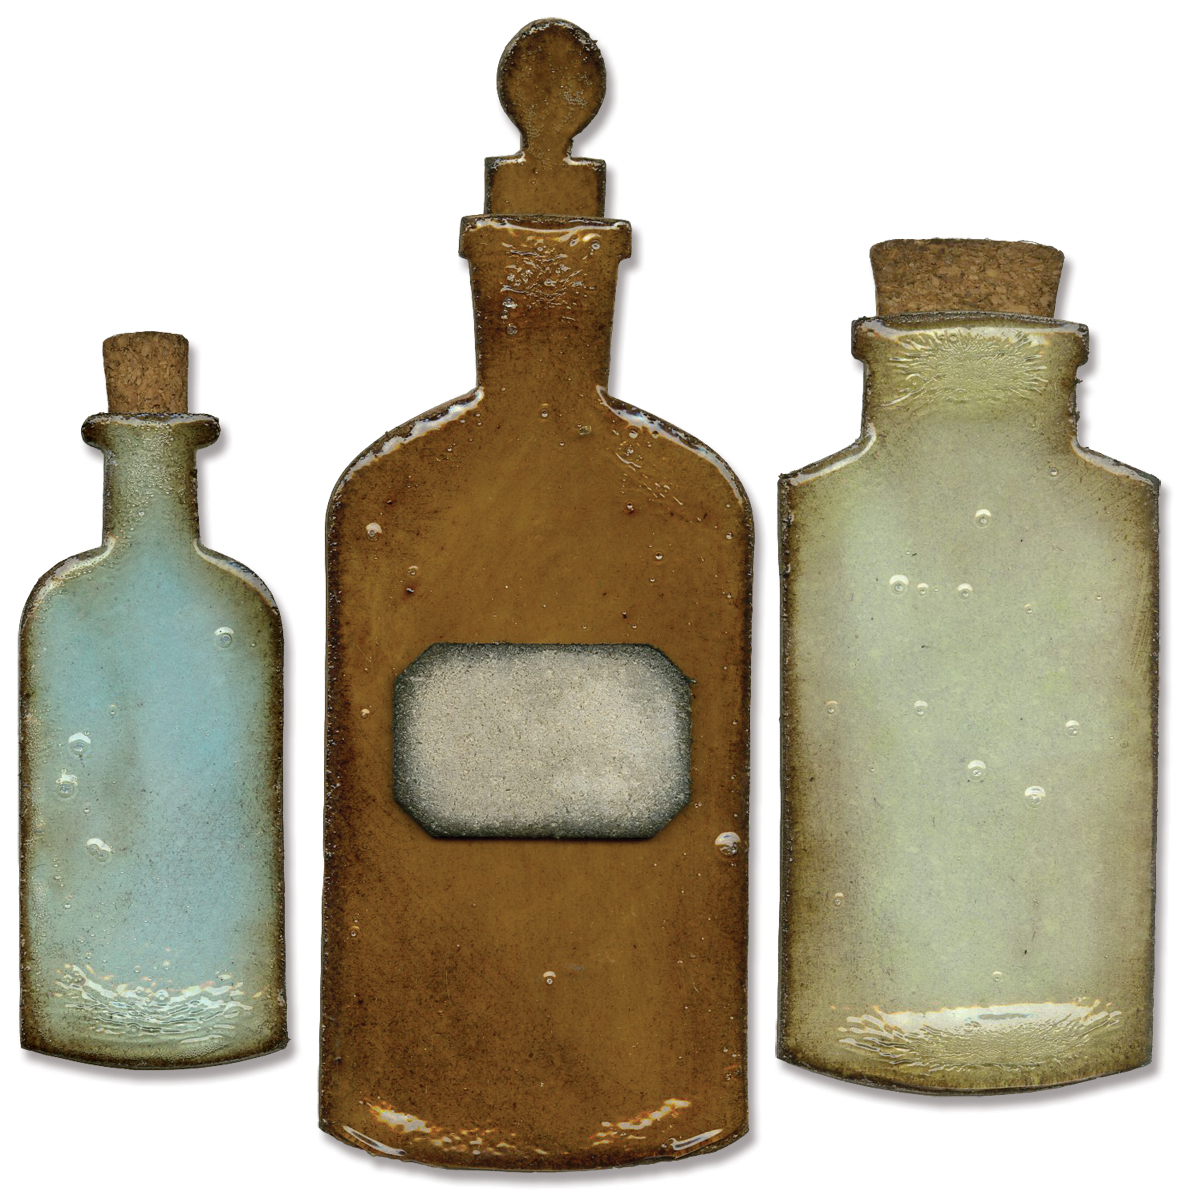 Sizzix Bigz Die Apothecary Bottles